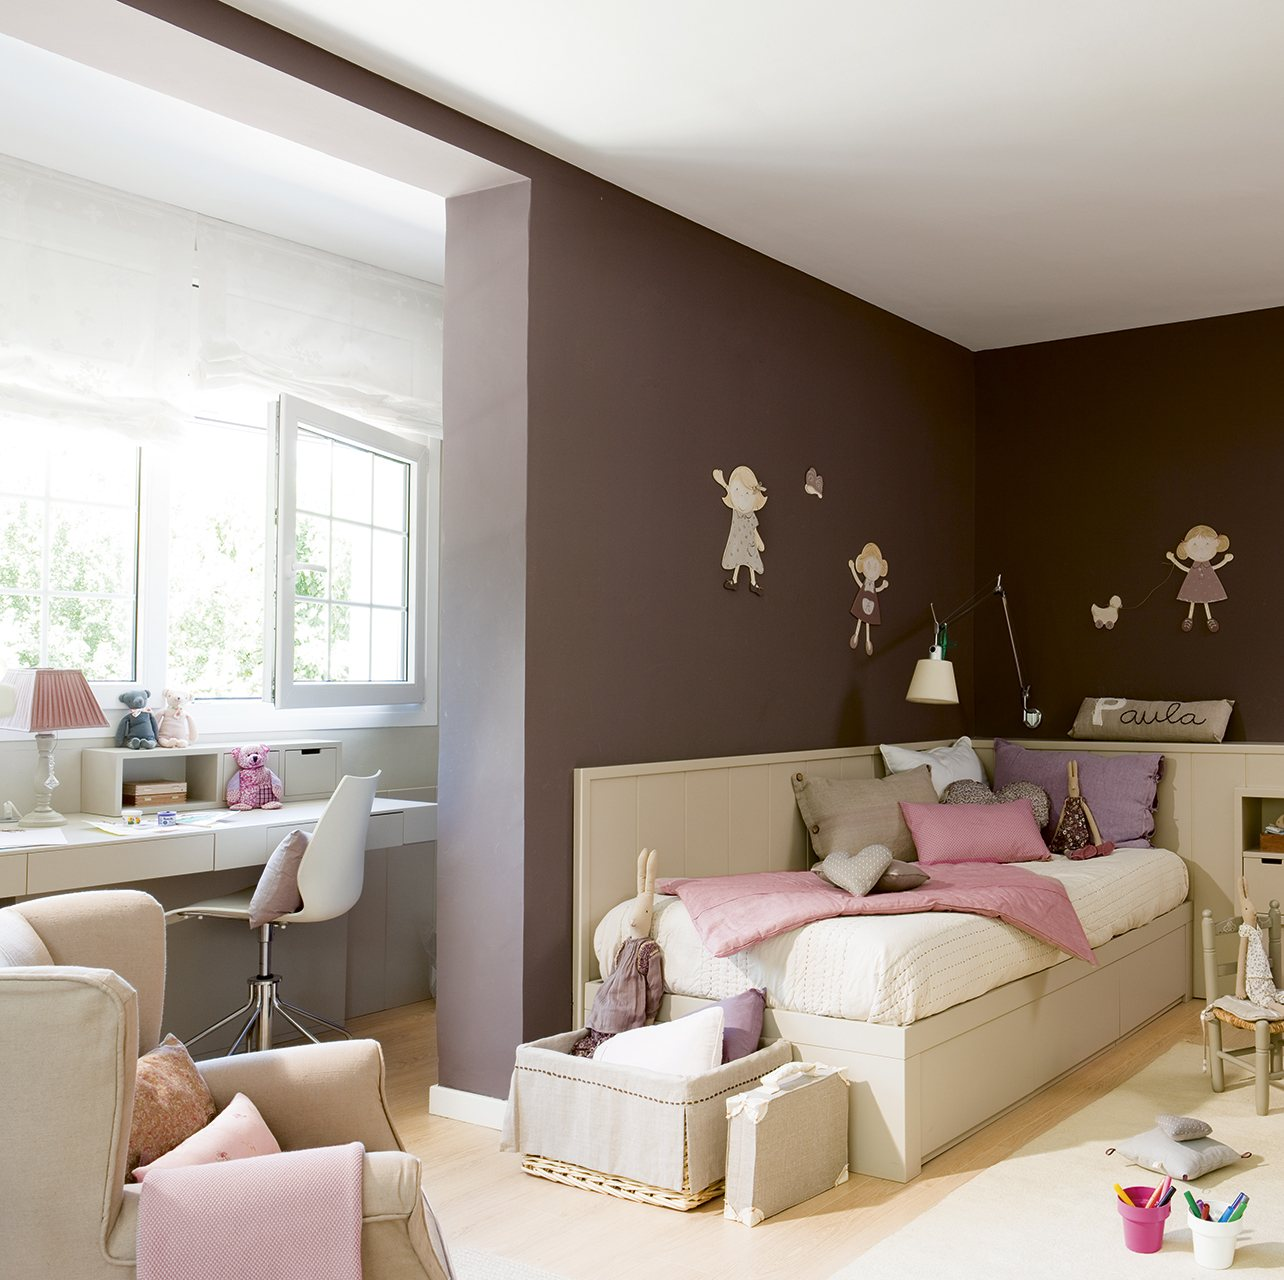 Dormitorio infantil con pared color chocolate. Camufla.